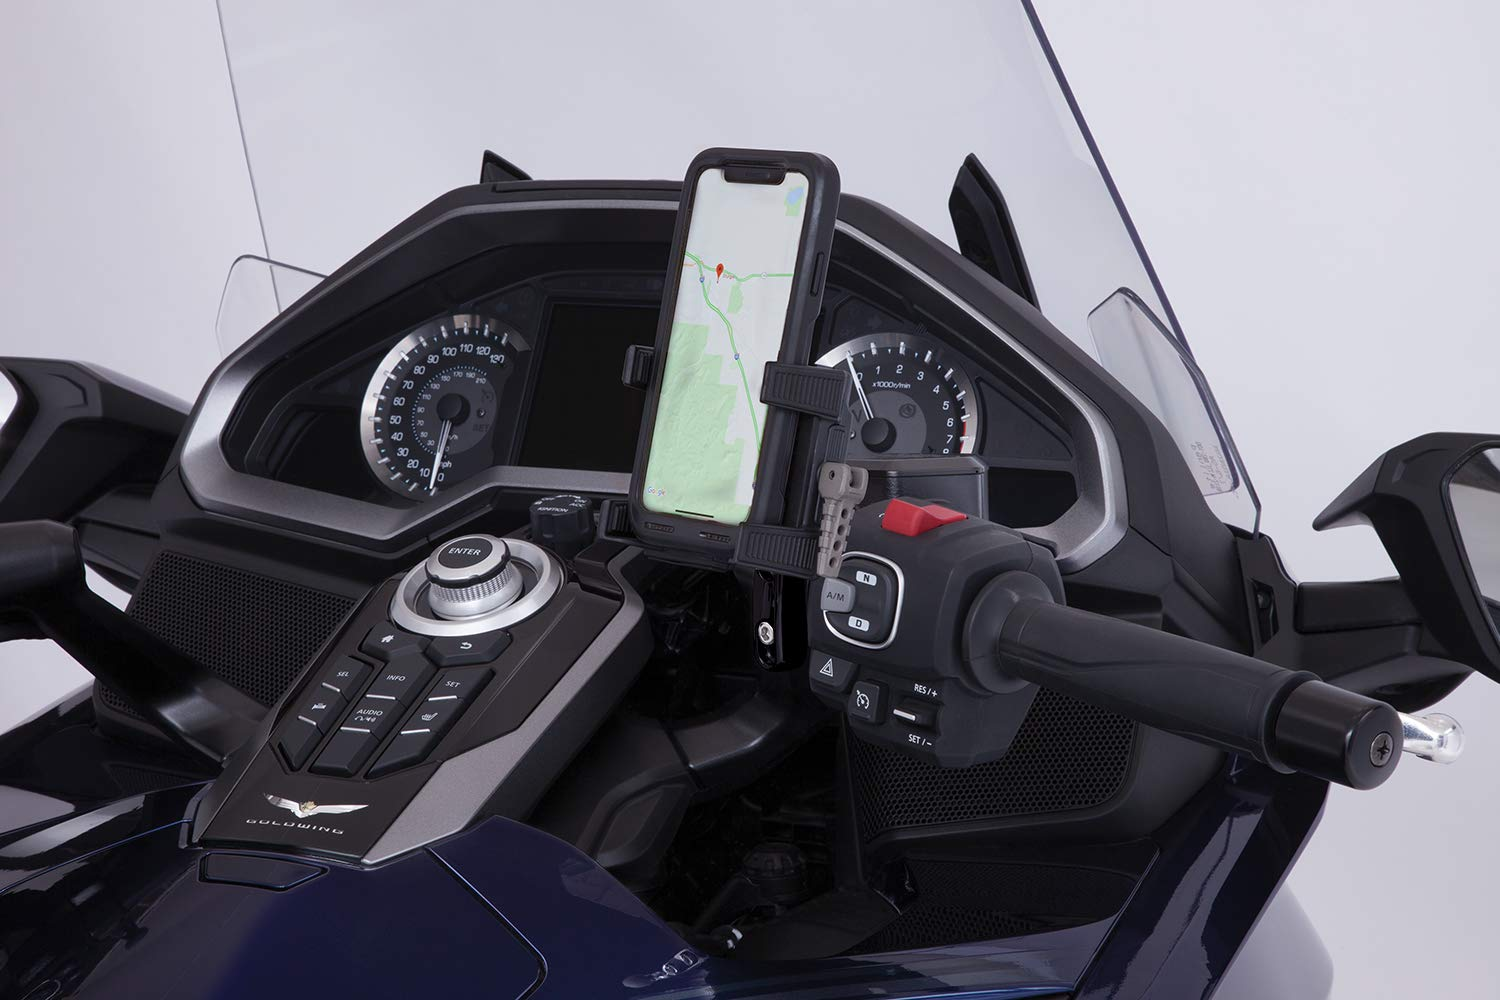 Goldstrike Smartphone Holder with Black Perch Mount for Gold Wing